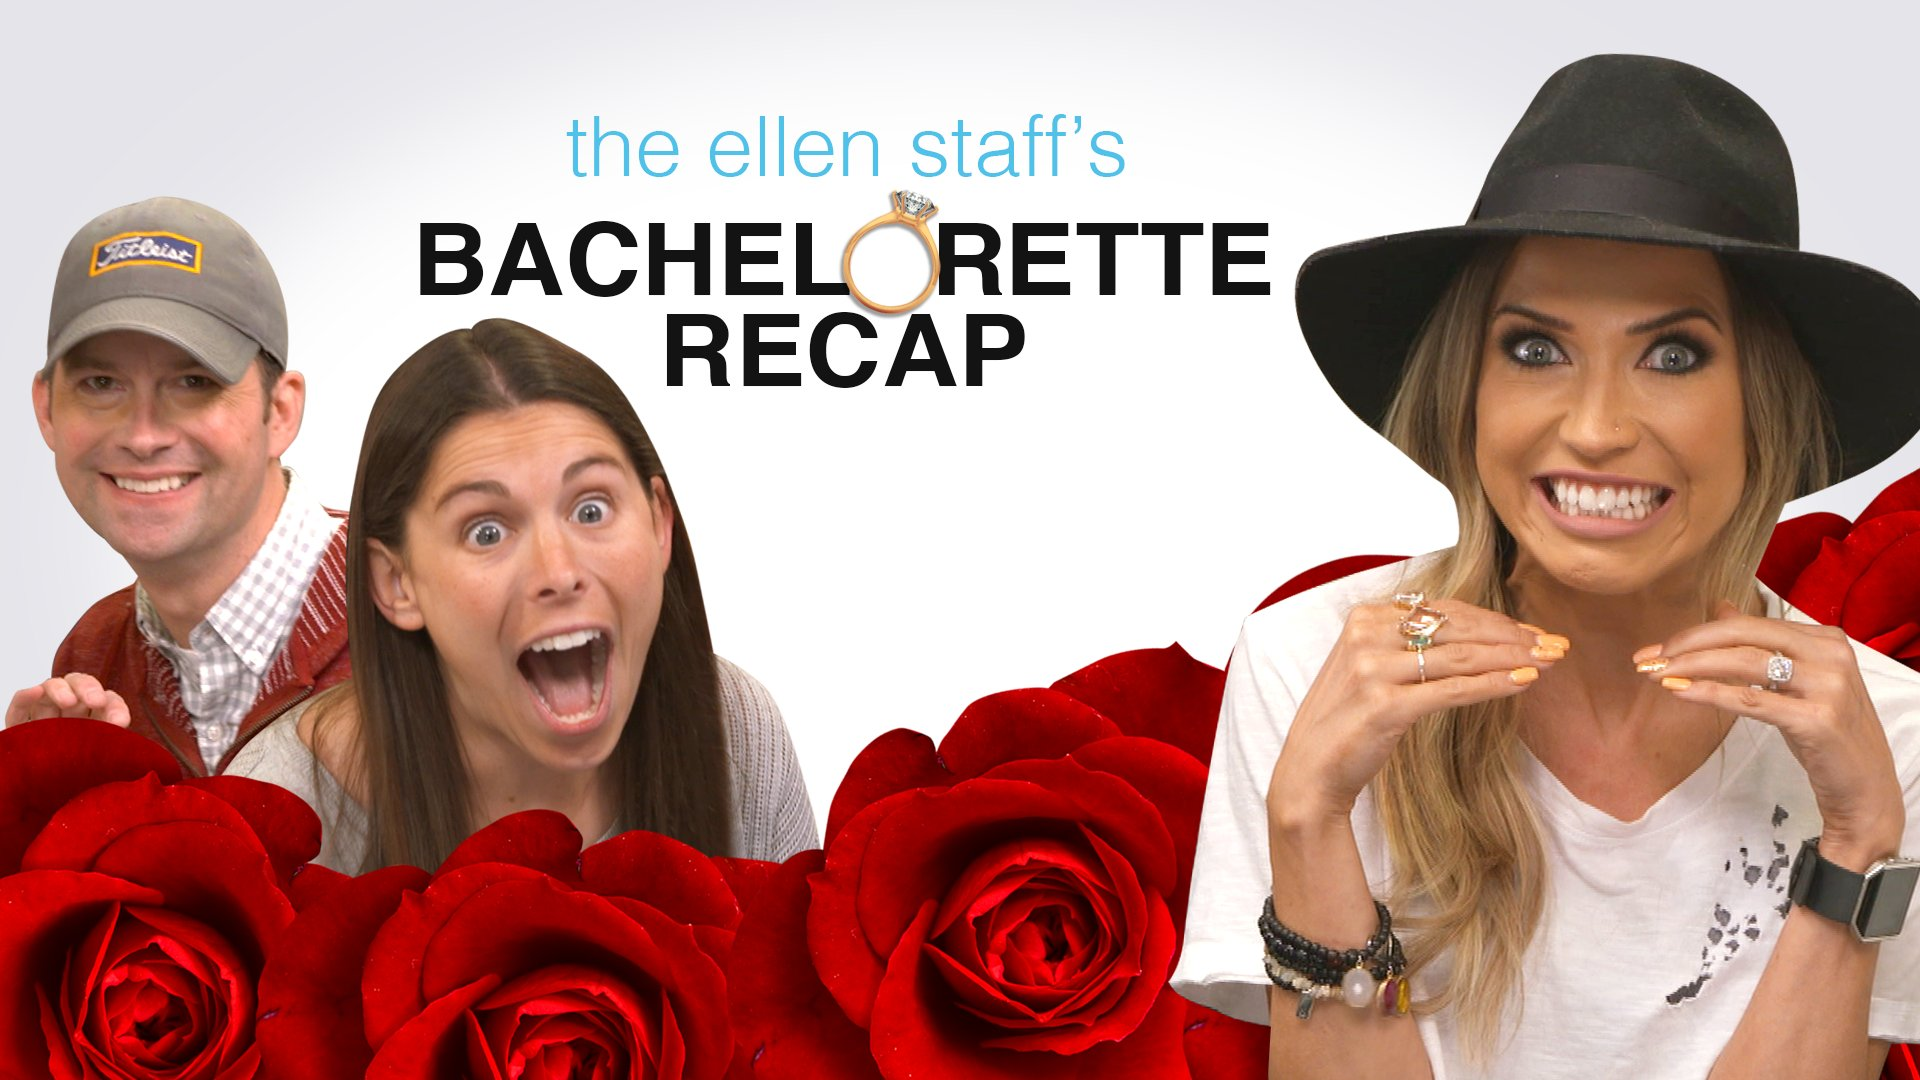 .@KaitlynBristowe from #TheBachelorette is in the building! I love this Bachelorette recap so much. https://t.co/Gc5HL7q1V3